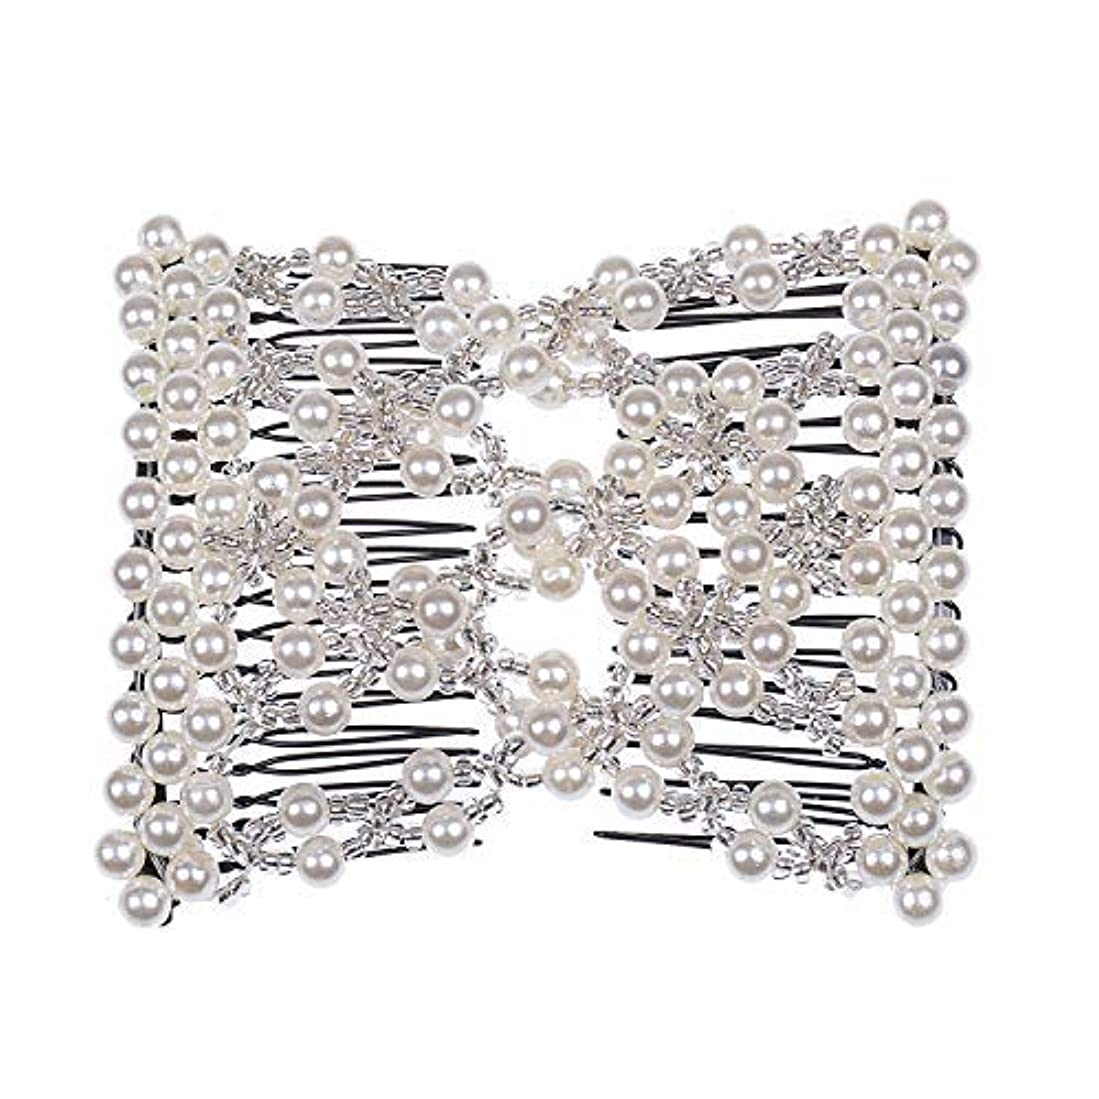 征服豚感覚Casualfashion Delicate Women Girls EZ Stretch Pearls Combs Beaded Hair Comb Jewelry Double Clips (White) [並行輸入品]